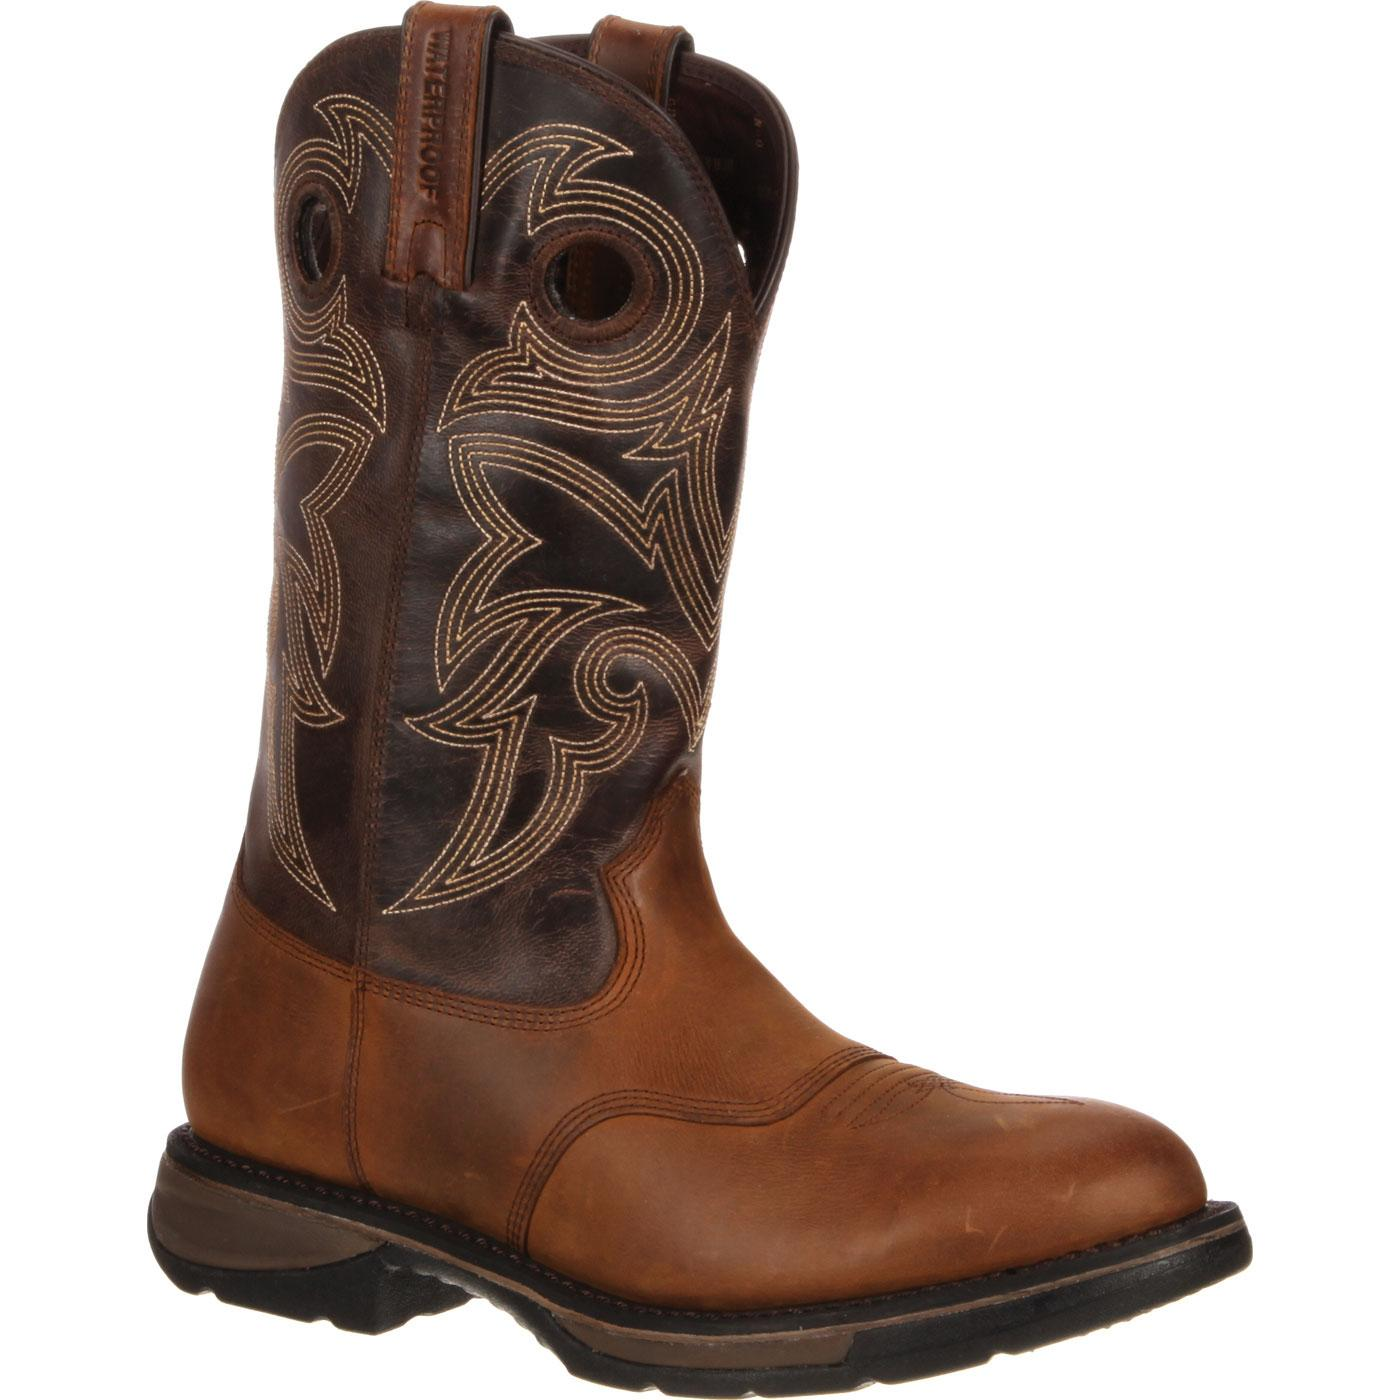 Workin' Rebel by Durango Waterproof Western Boot, DDB0064